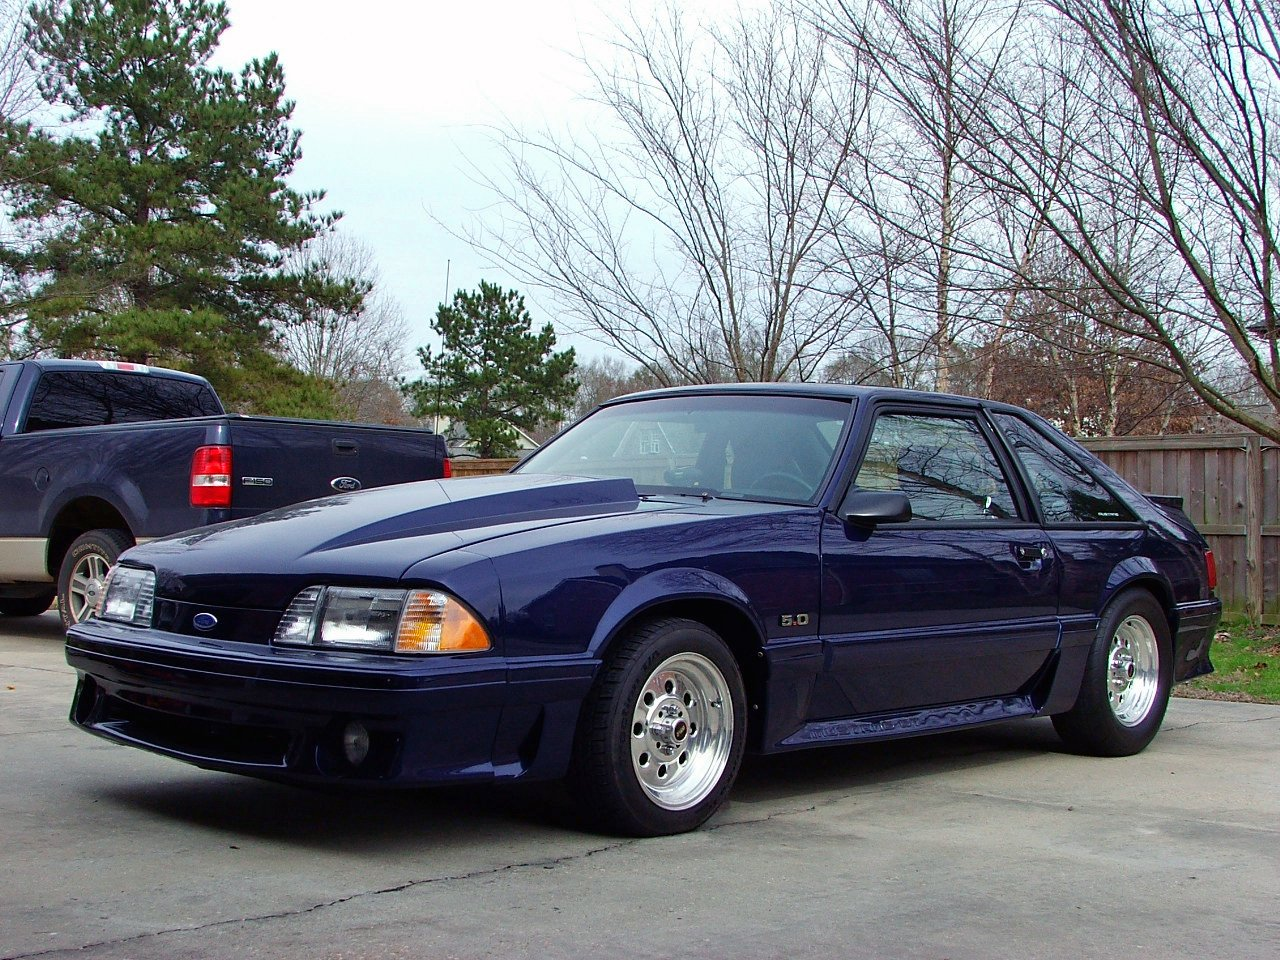 1989 Mustang LX stock intake and head porting  Page 4  Ford